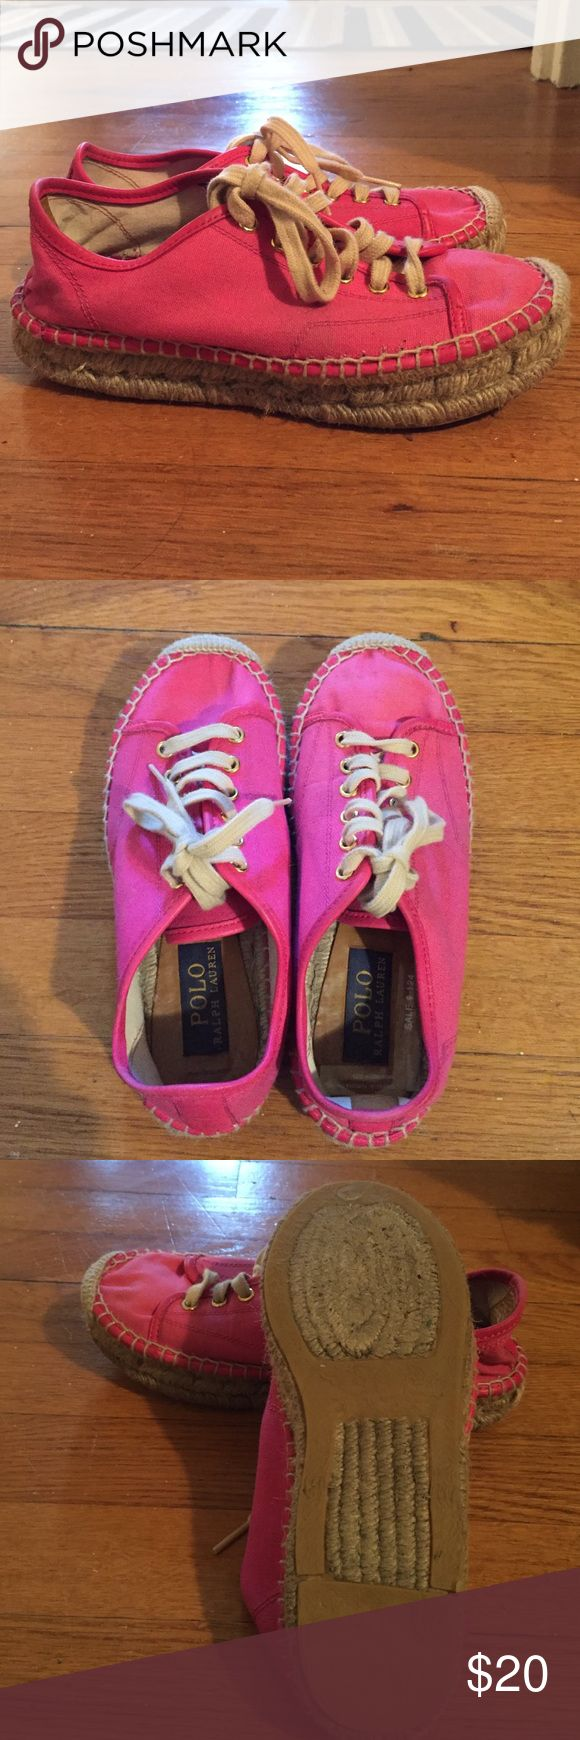 ✨SALE✨ • POLO RALPH LAUREN • espadrille sneakers Gently worn Polo espadrille sneakers. Pink, size says 7 (or 37 in European size) but fits like a US 6.5! Bought in Europe, made in Spain. Still in great condition! Polo by Ralph Lauren Shoes Espadrilles